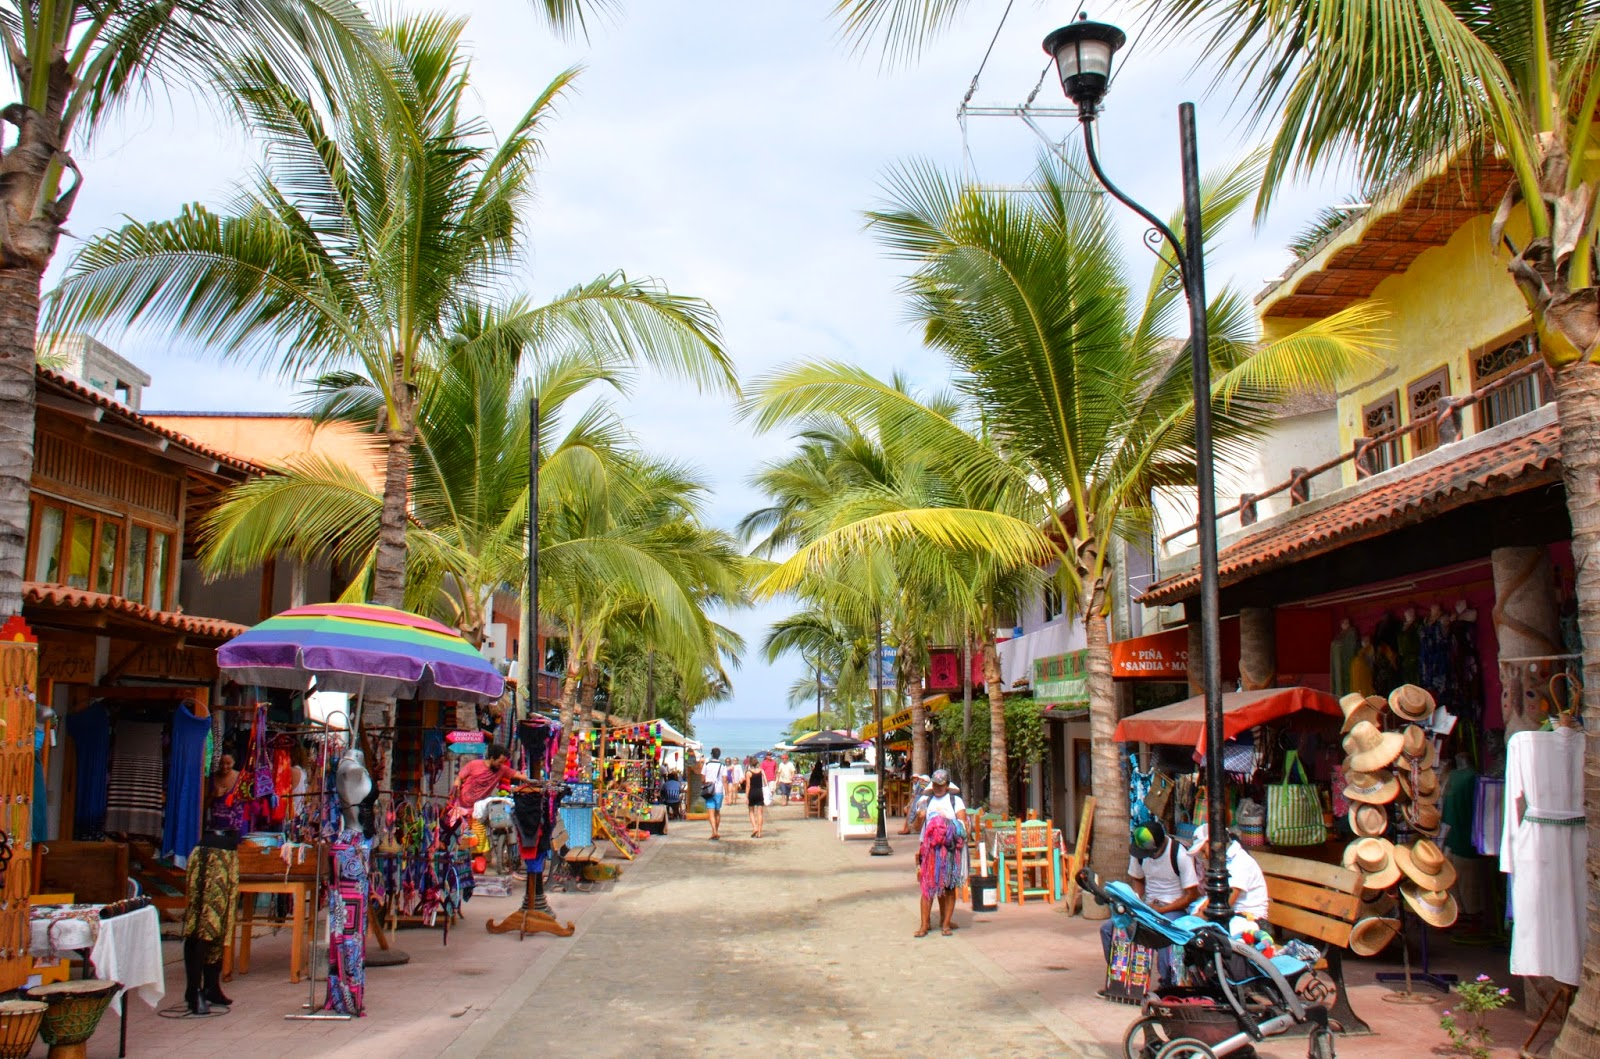 This is sayulita a tiny town about 45 minutes out of puerto vallarta